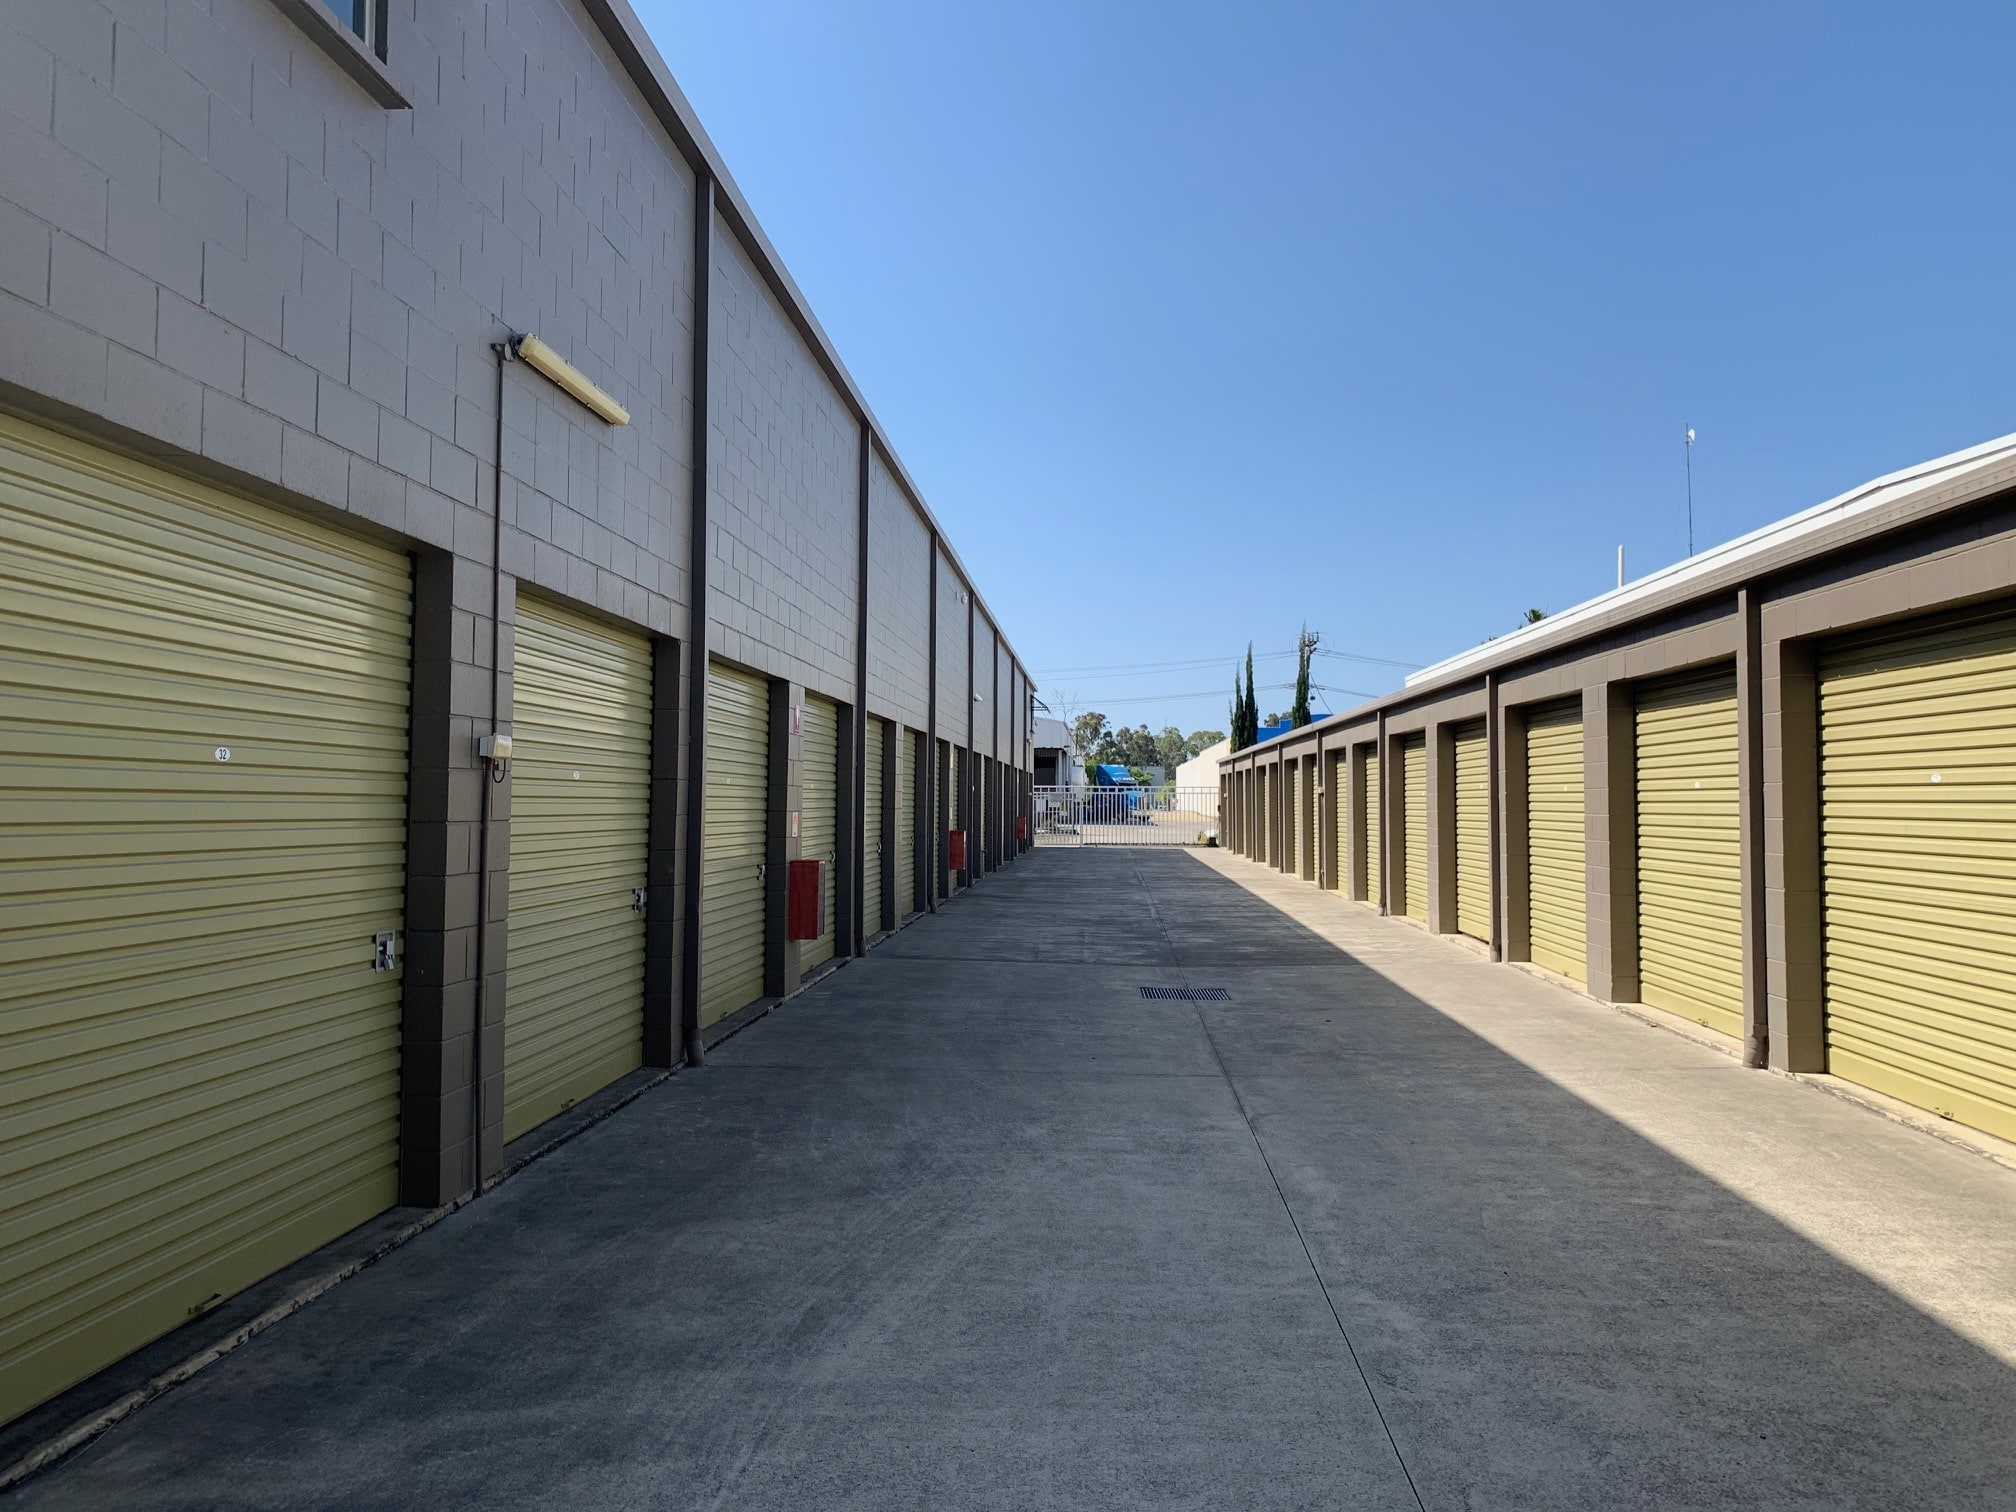 Top 8 Reasons To Use Self Storage - More Space Storage